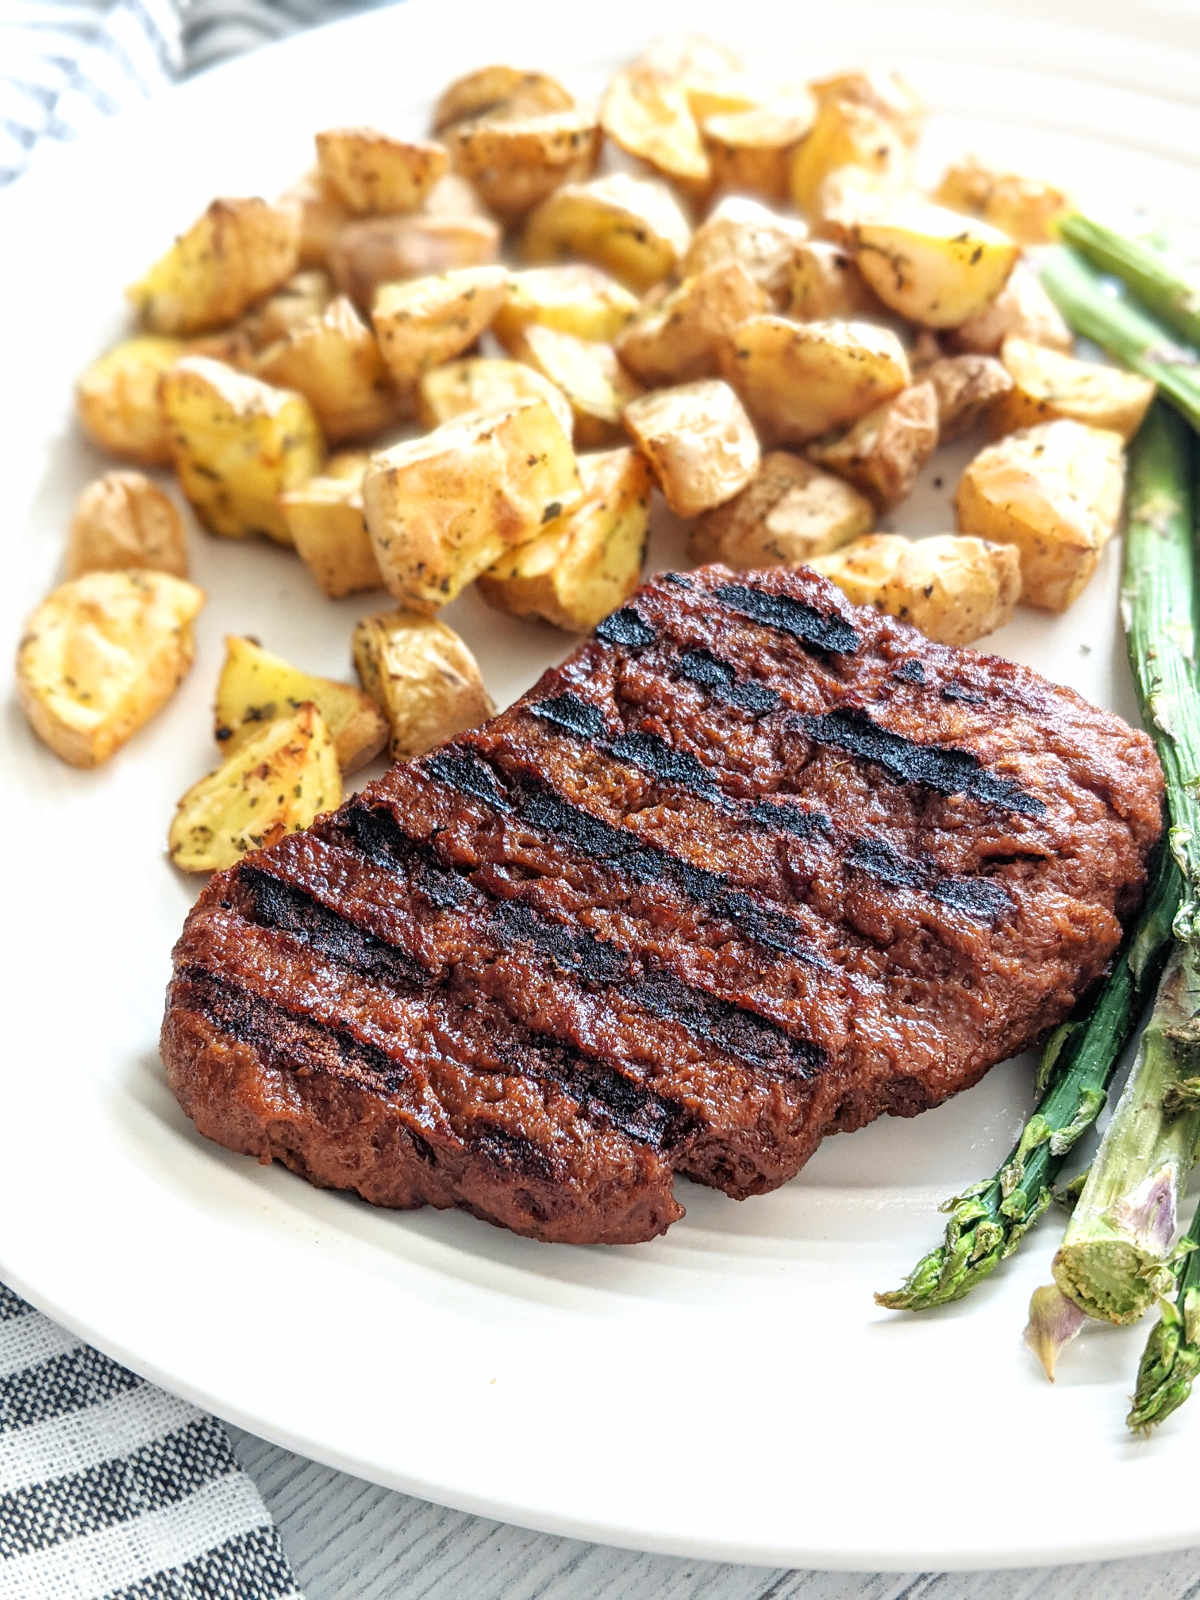 A vegan steak on a plate with potatoes and asparagus.